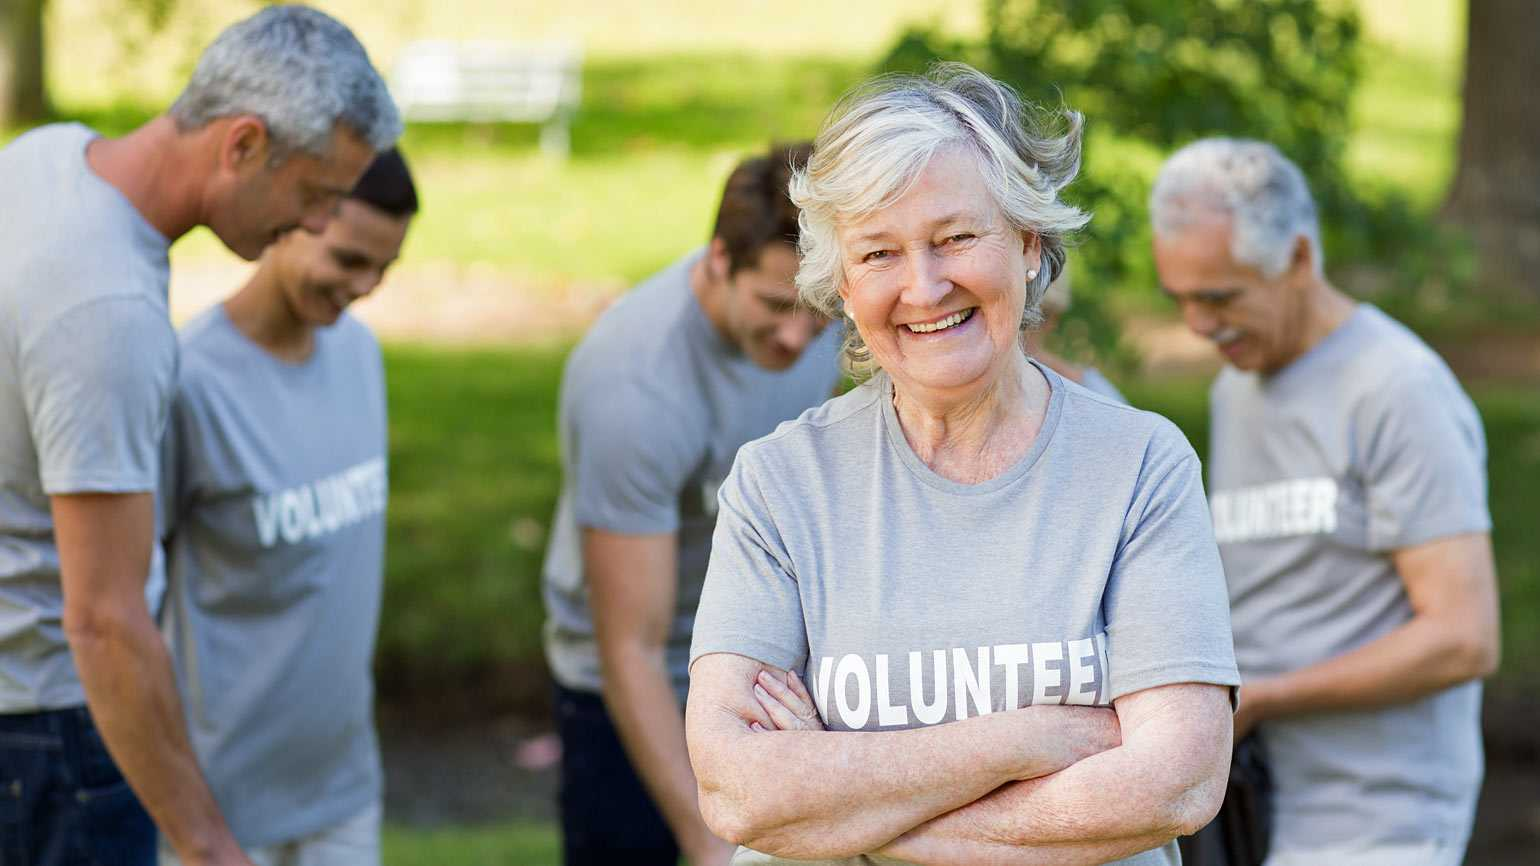 Senior Citizens Volunteering